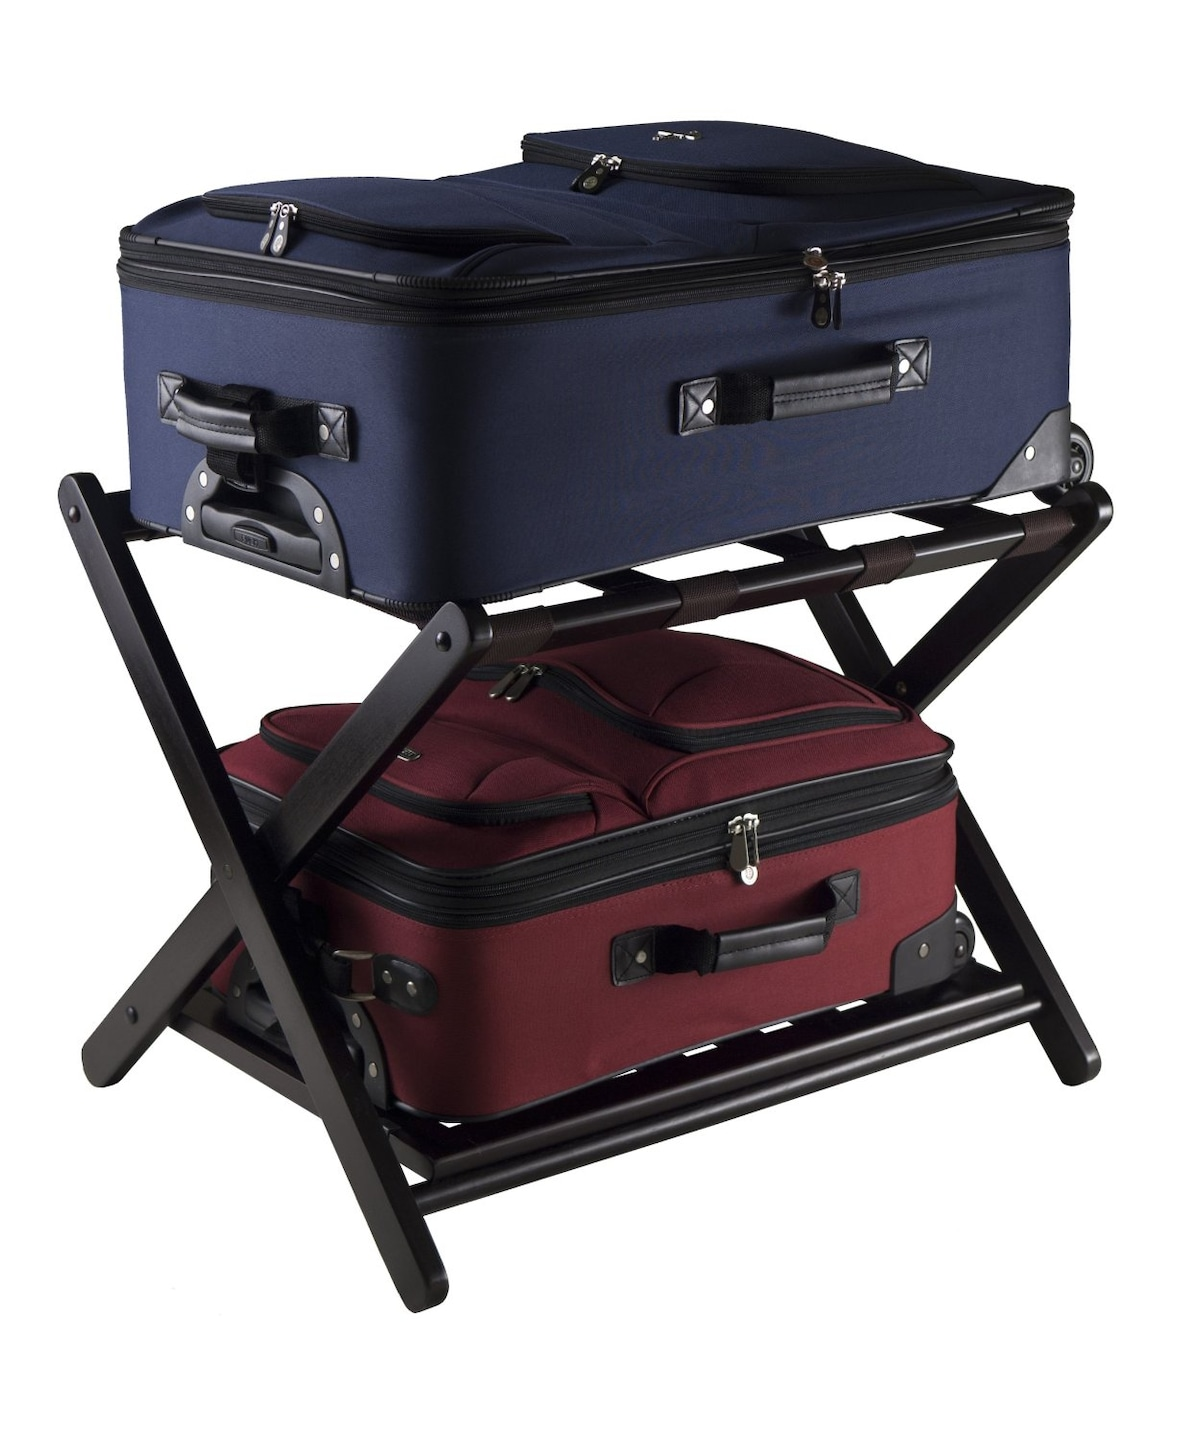 Double luggage rack for efficient storage and packing!